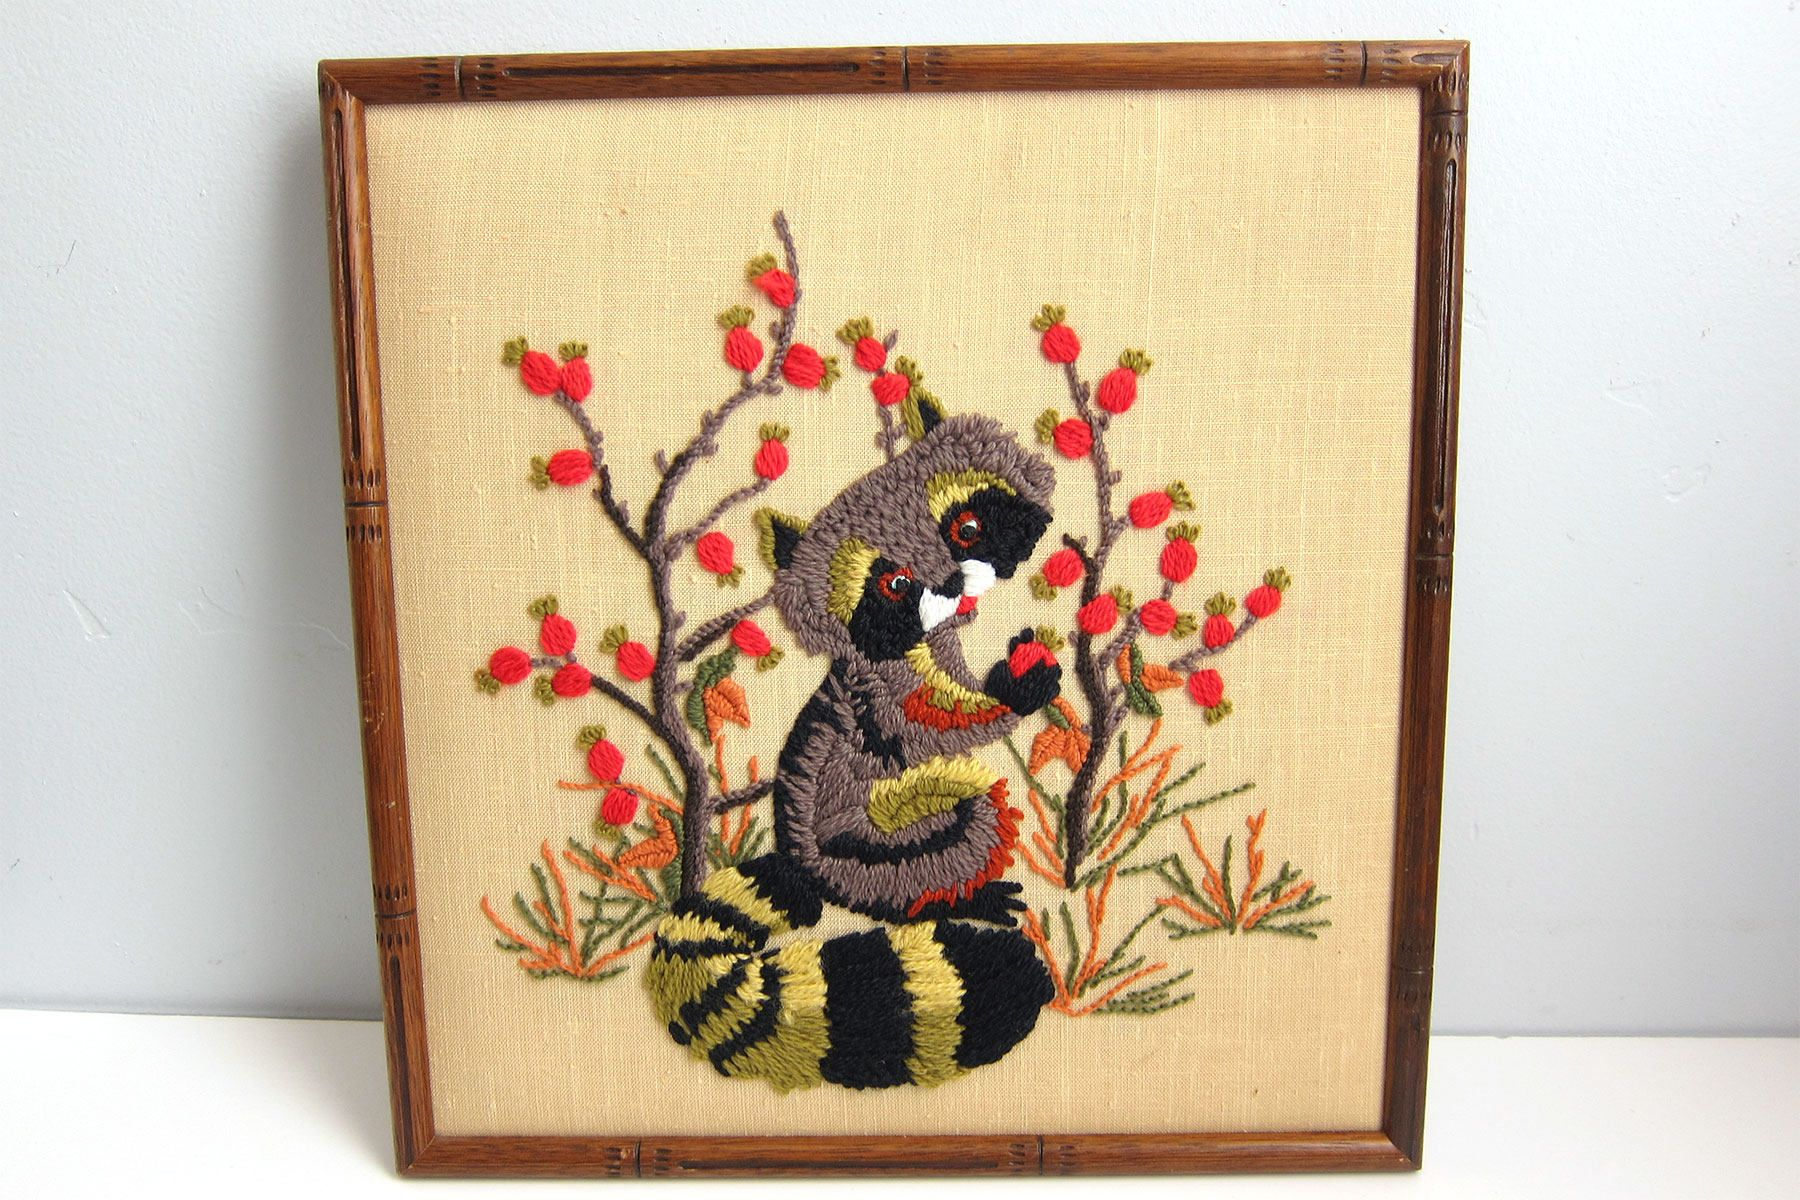 Vintage Cute Raccoon Apple Tree Crewel Embroidery Framed Wall Art ...